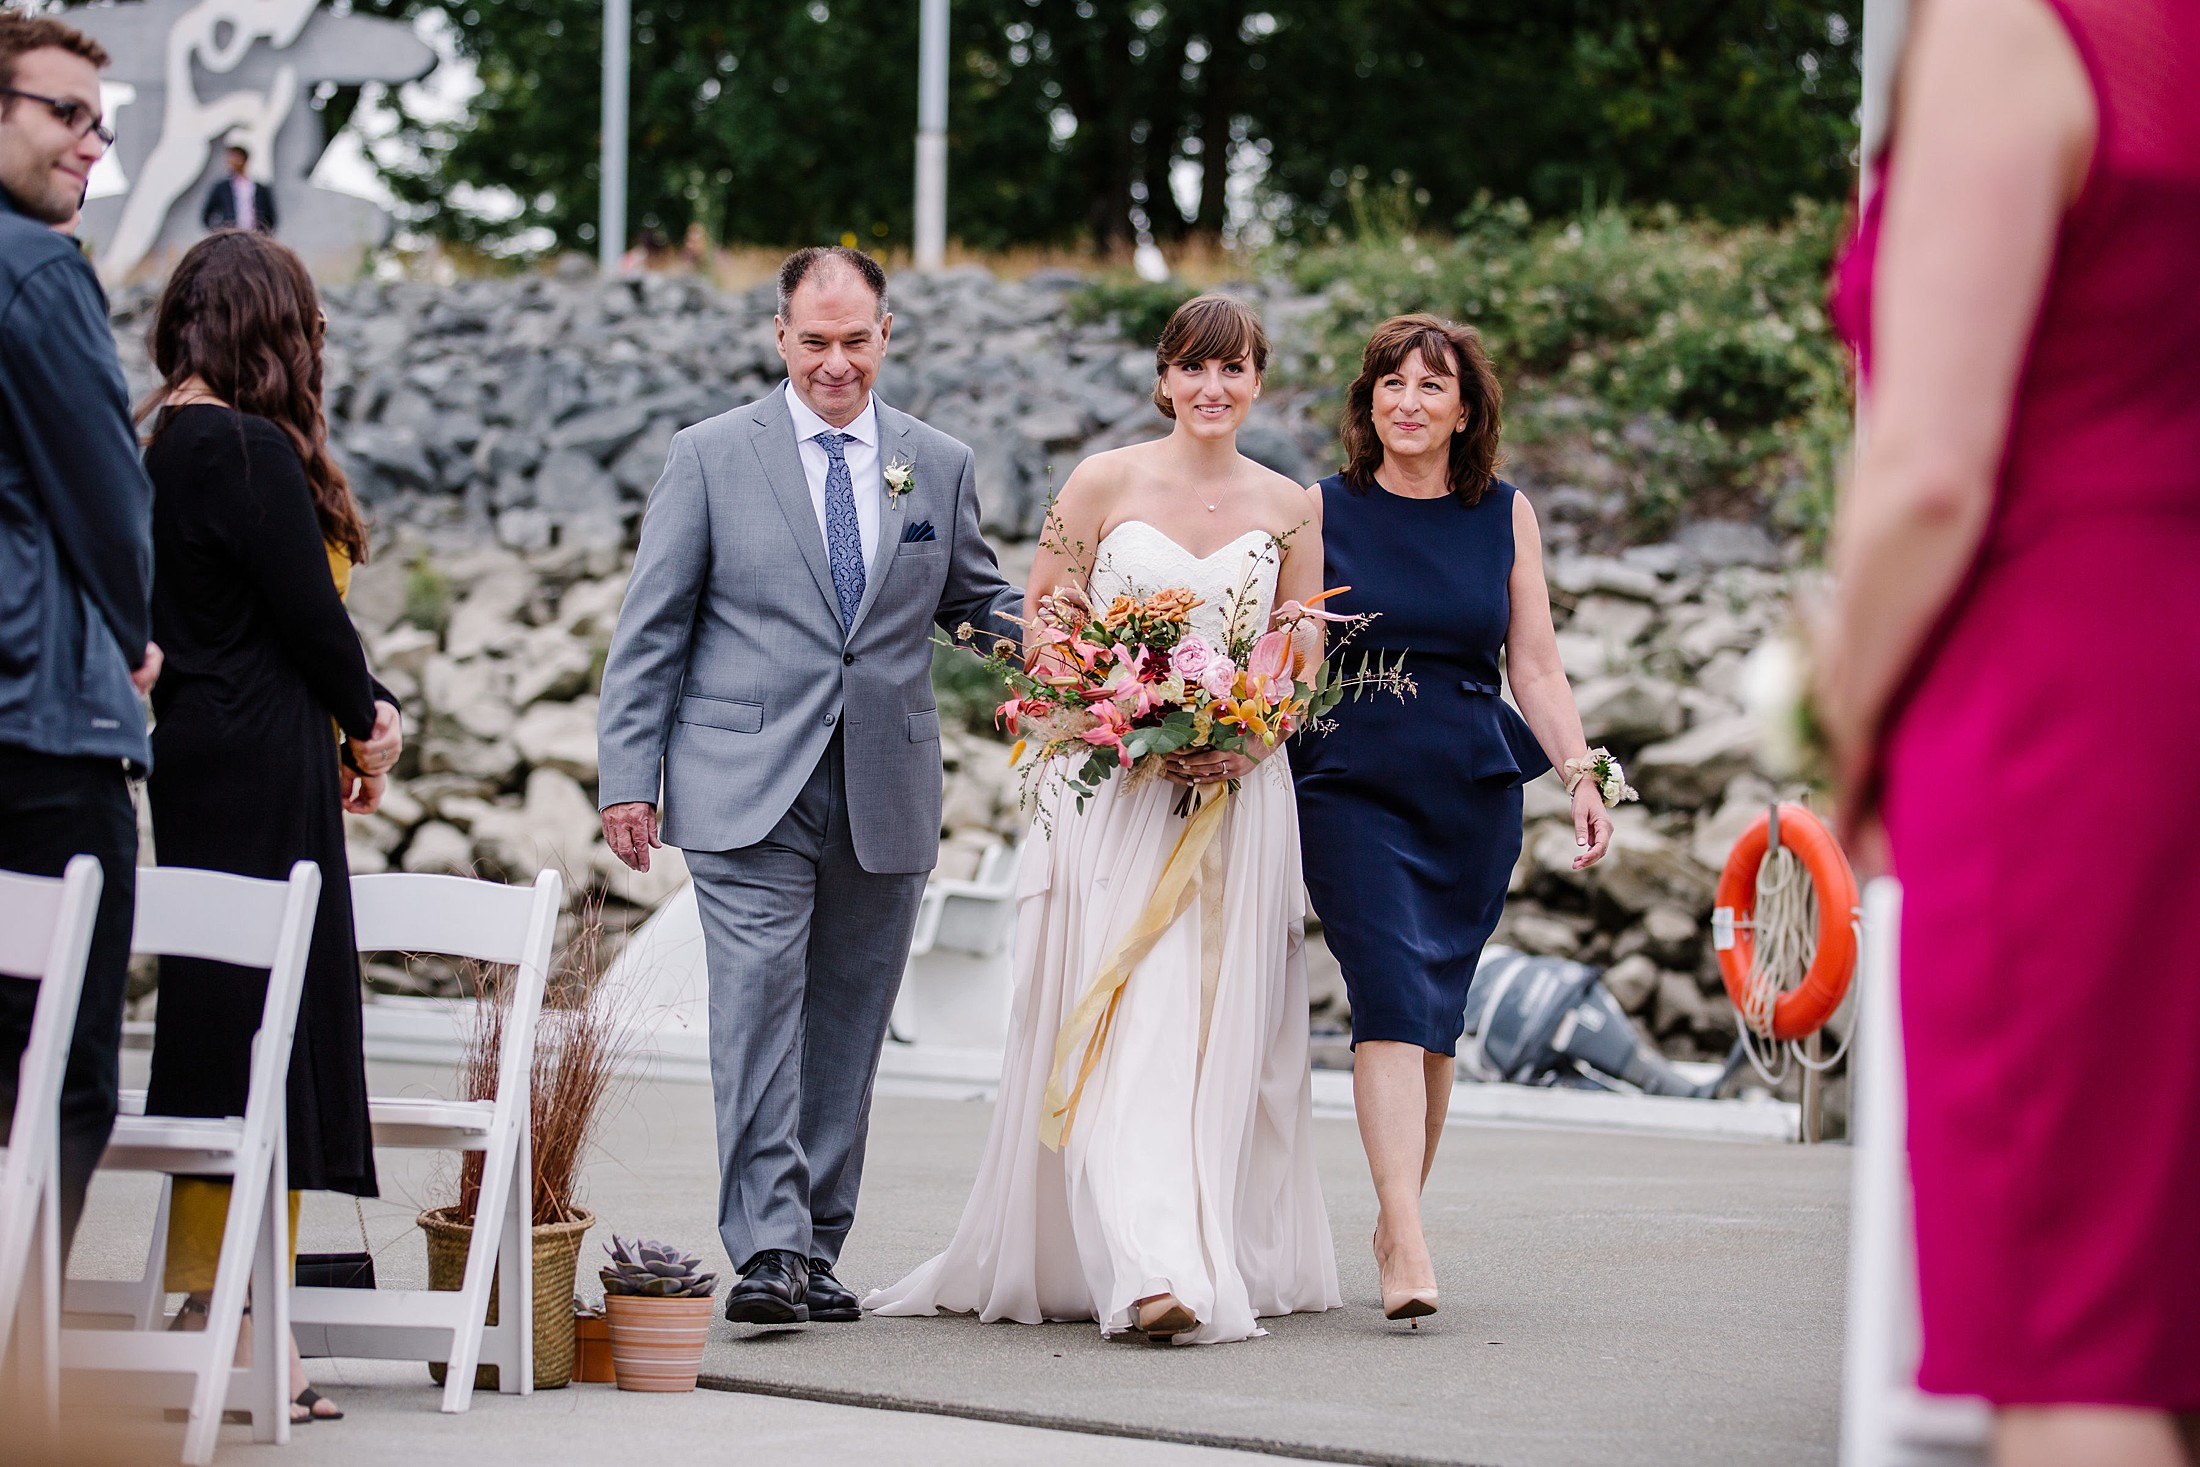 June23.DavidElena42216_Note Photography Documentary Photographer Wedding Photos Vancouver B.C. Best 2019 2020 Vancouver Island UBC Boathouse Tacofino Catering Richmond Floralista Man About Town DJ Outdoor Ceremony.jpg